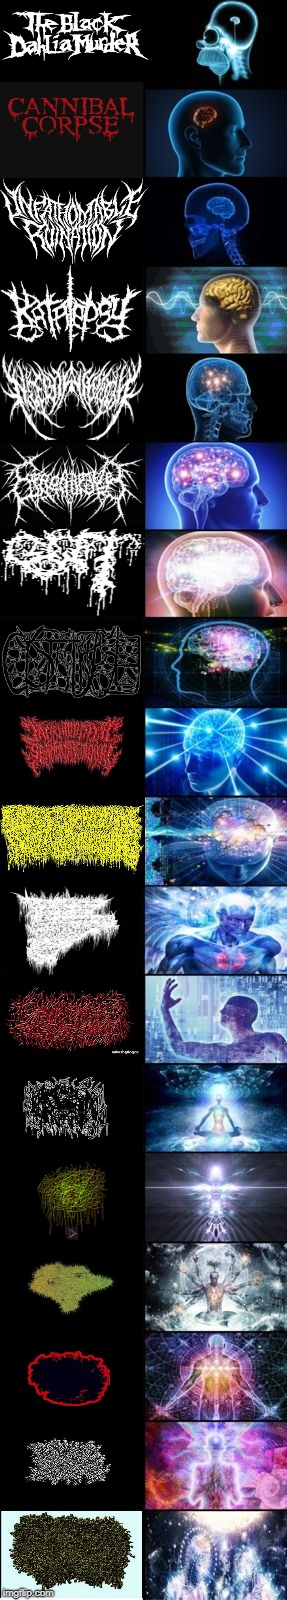 Expanding Brain longest version | image tagged in expanding brain longest version | made w/ Imgflip meme maker